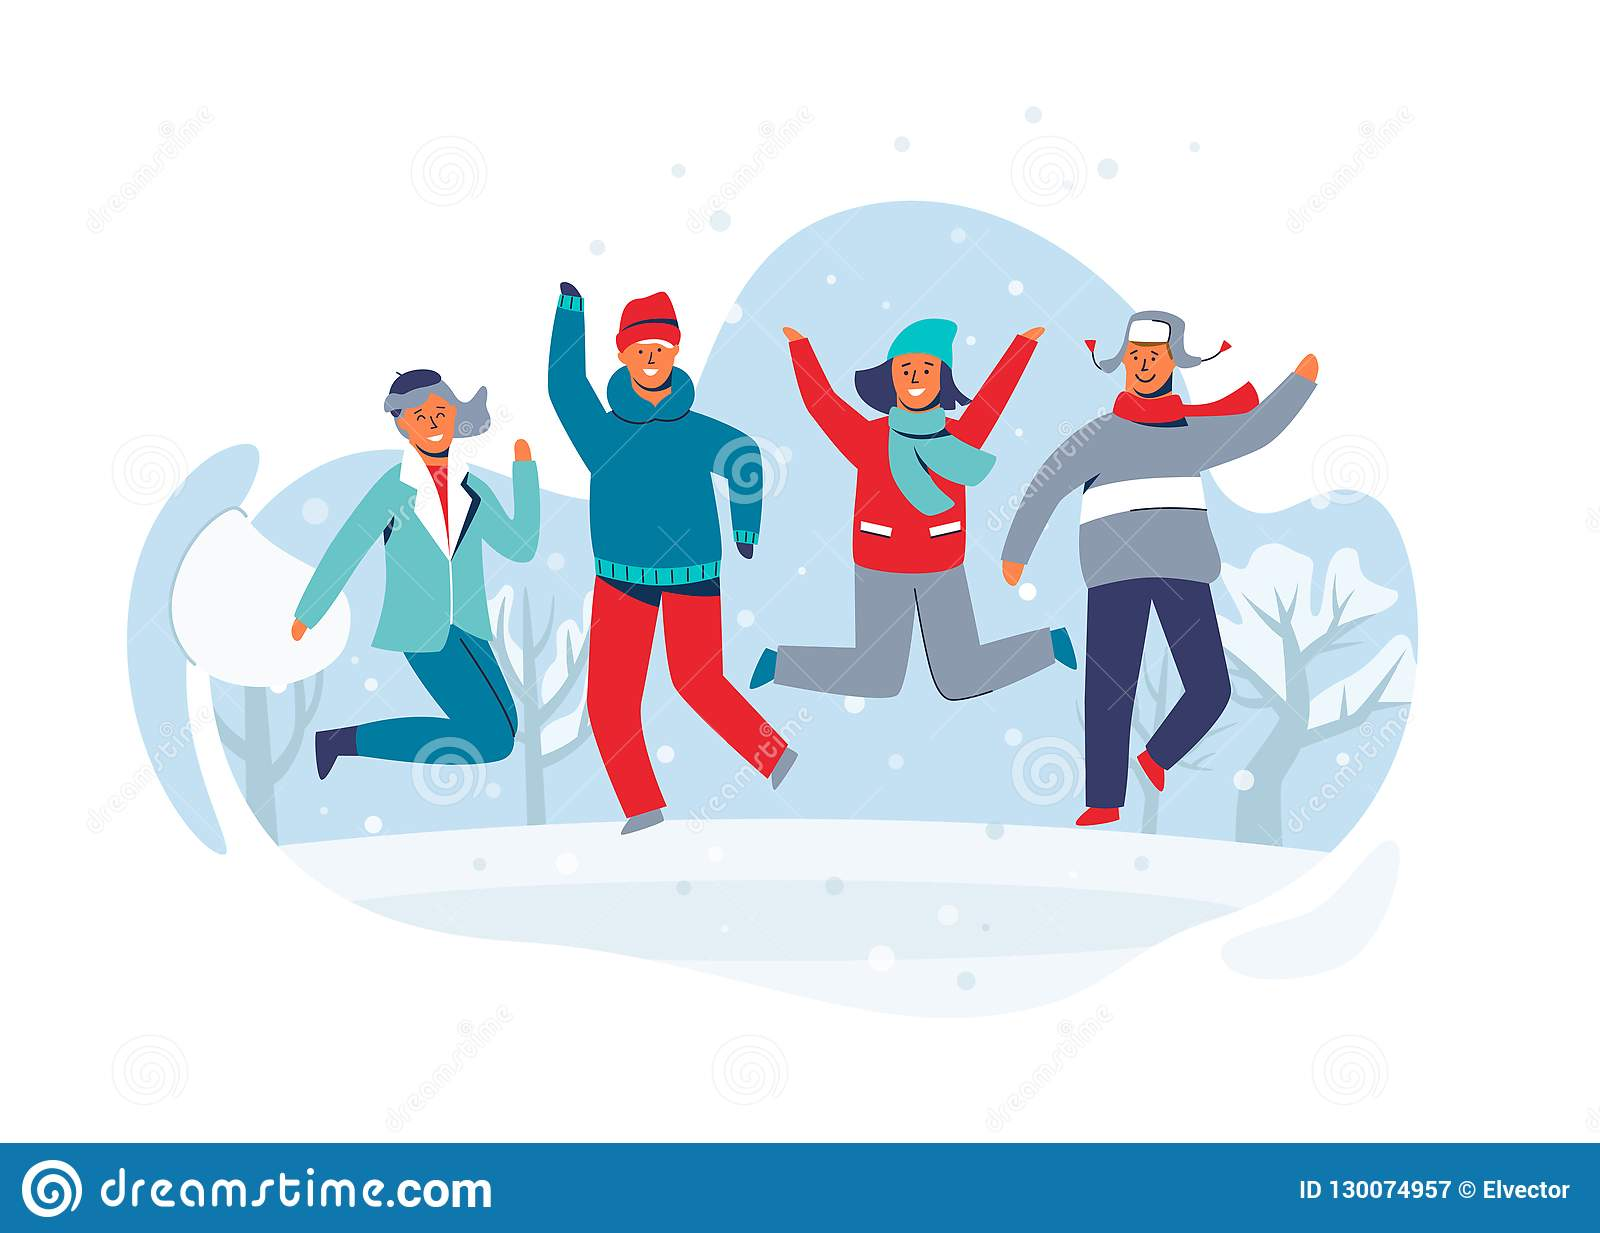 6c2b4c0afc0 Joyful Characters Friends Jumping in the Snow. People in Warm Clothes on  Happy Winter Vacation. Man and Woman Having Fun Outdoors. Vector  illustration